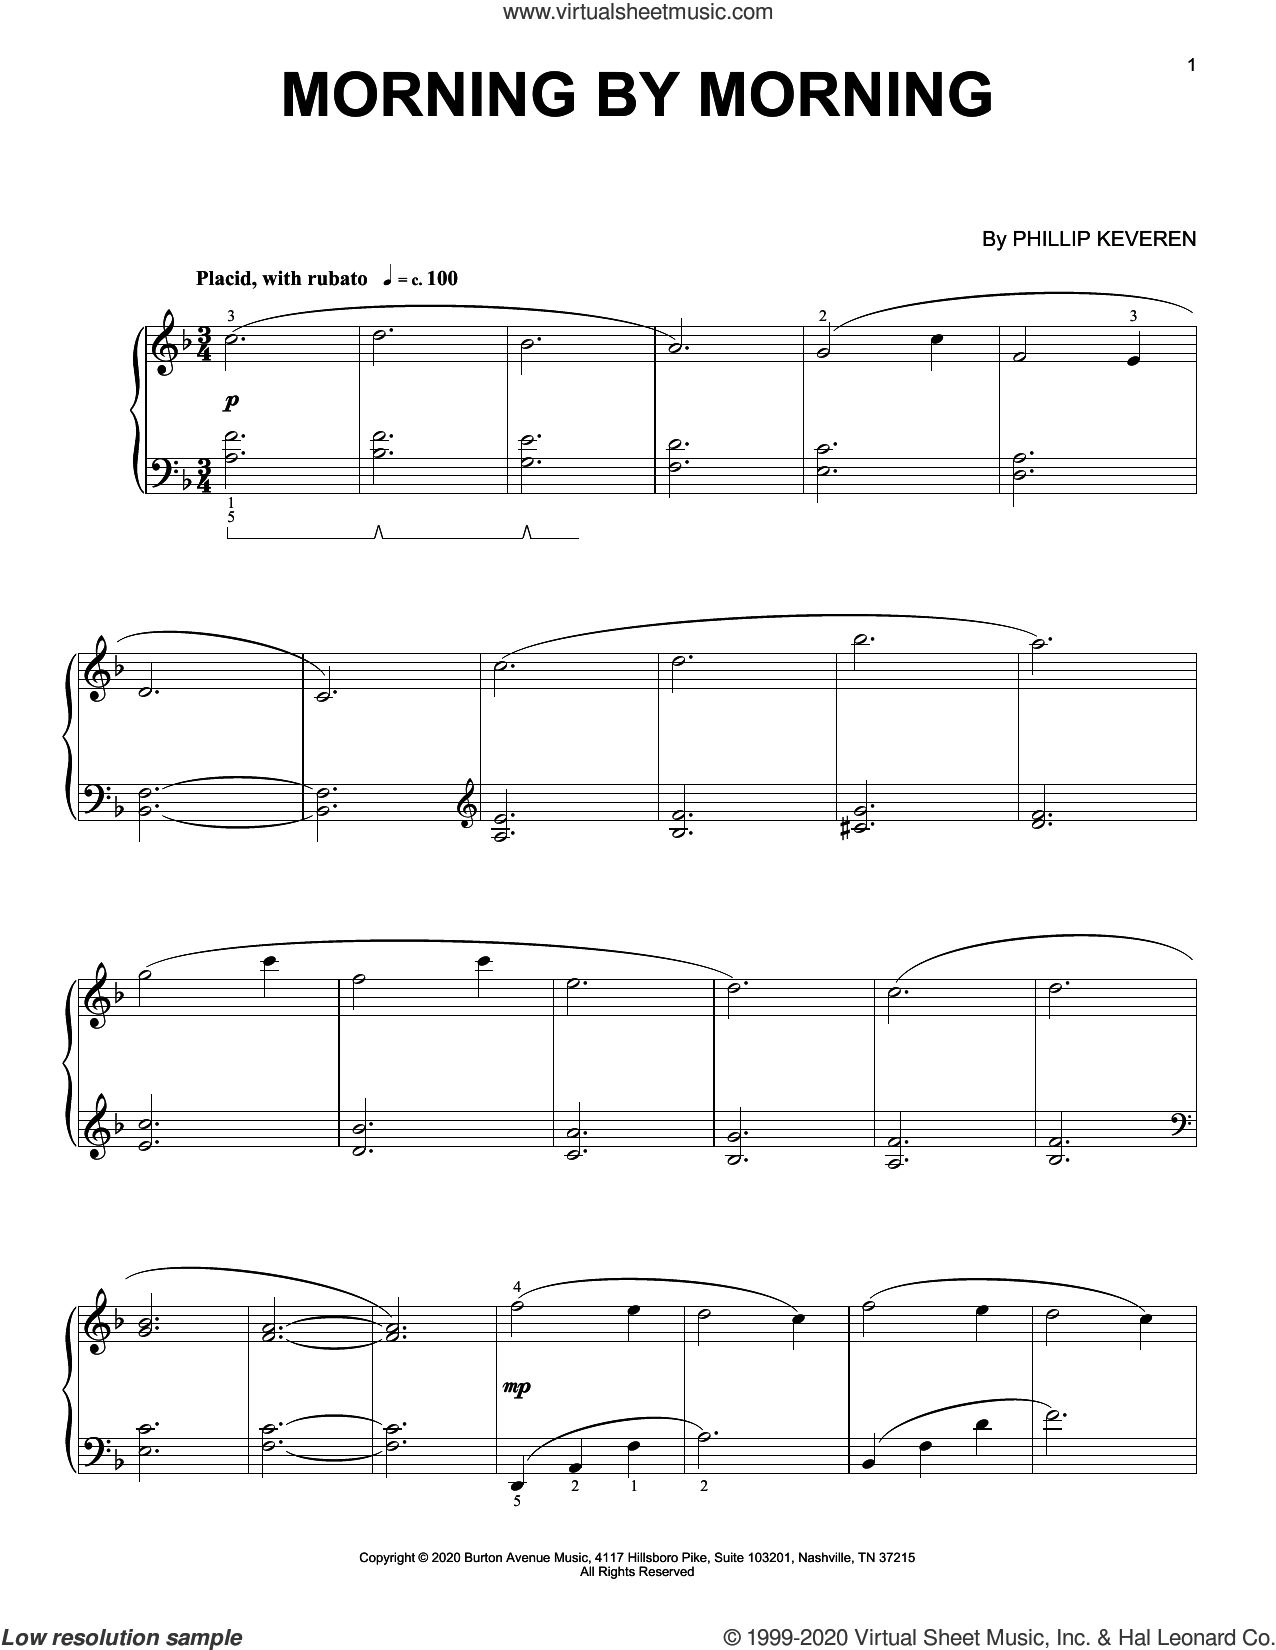 Morning By Morning sheet music for piano solo by Phillip Keveren, intermediate skill level